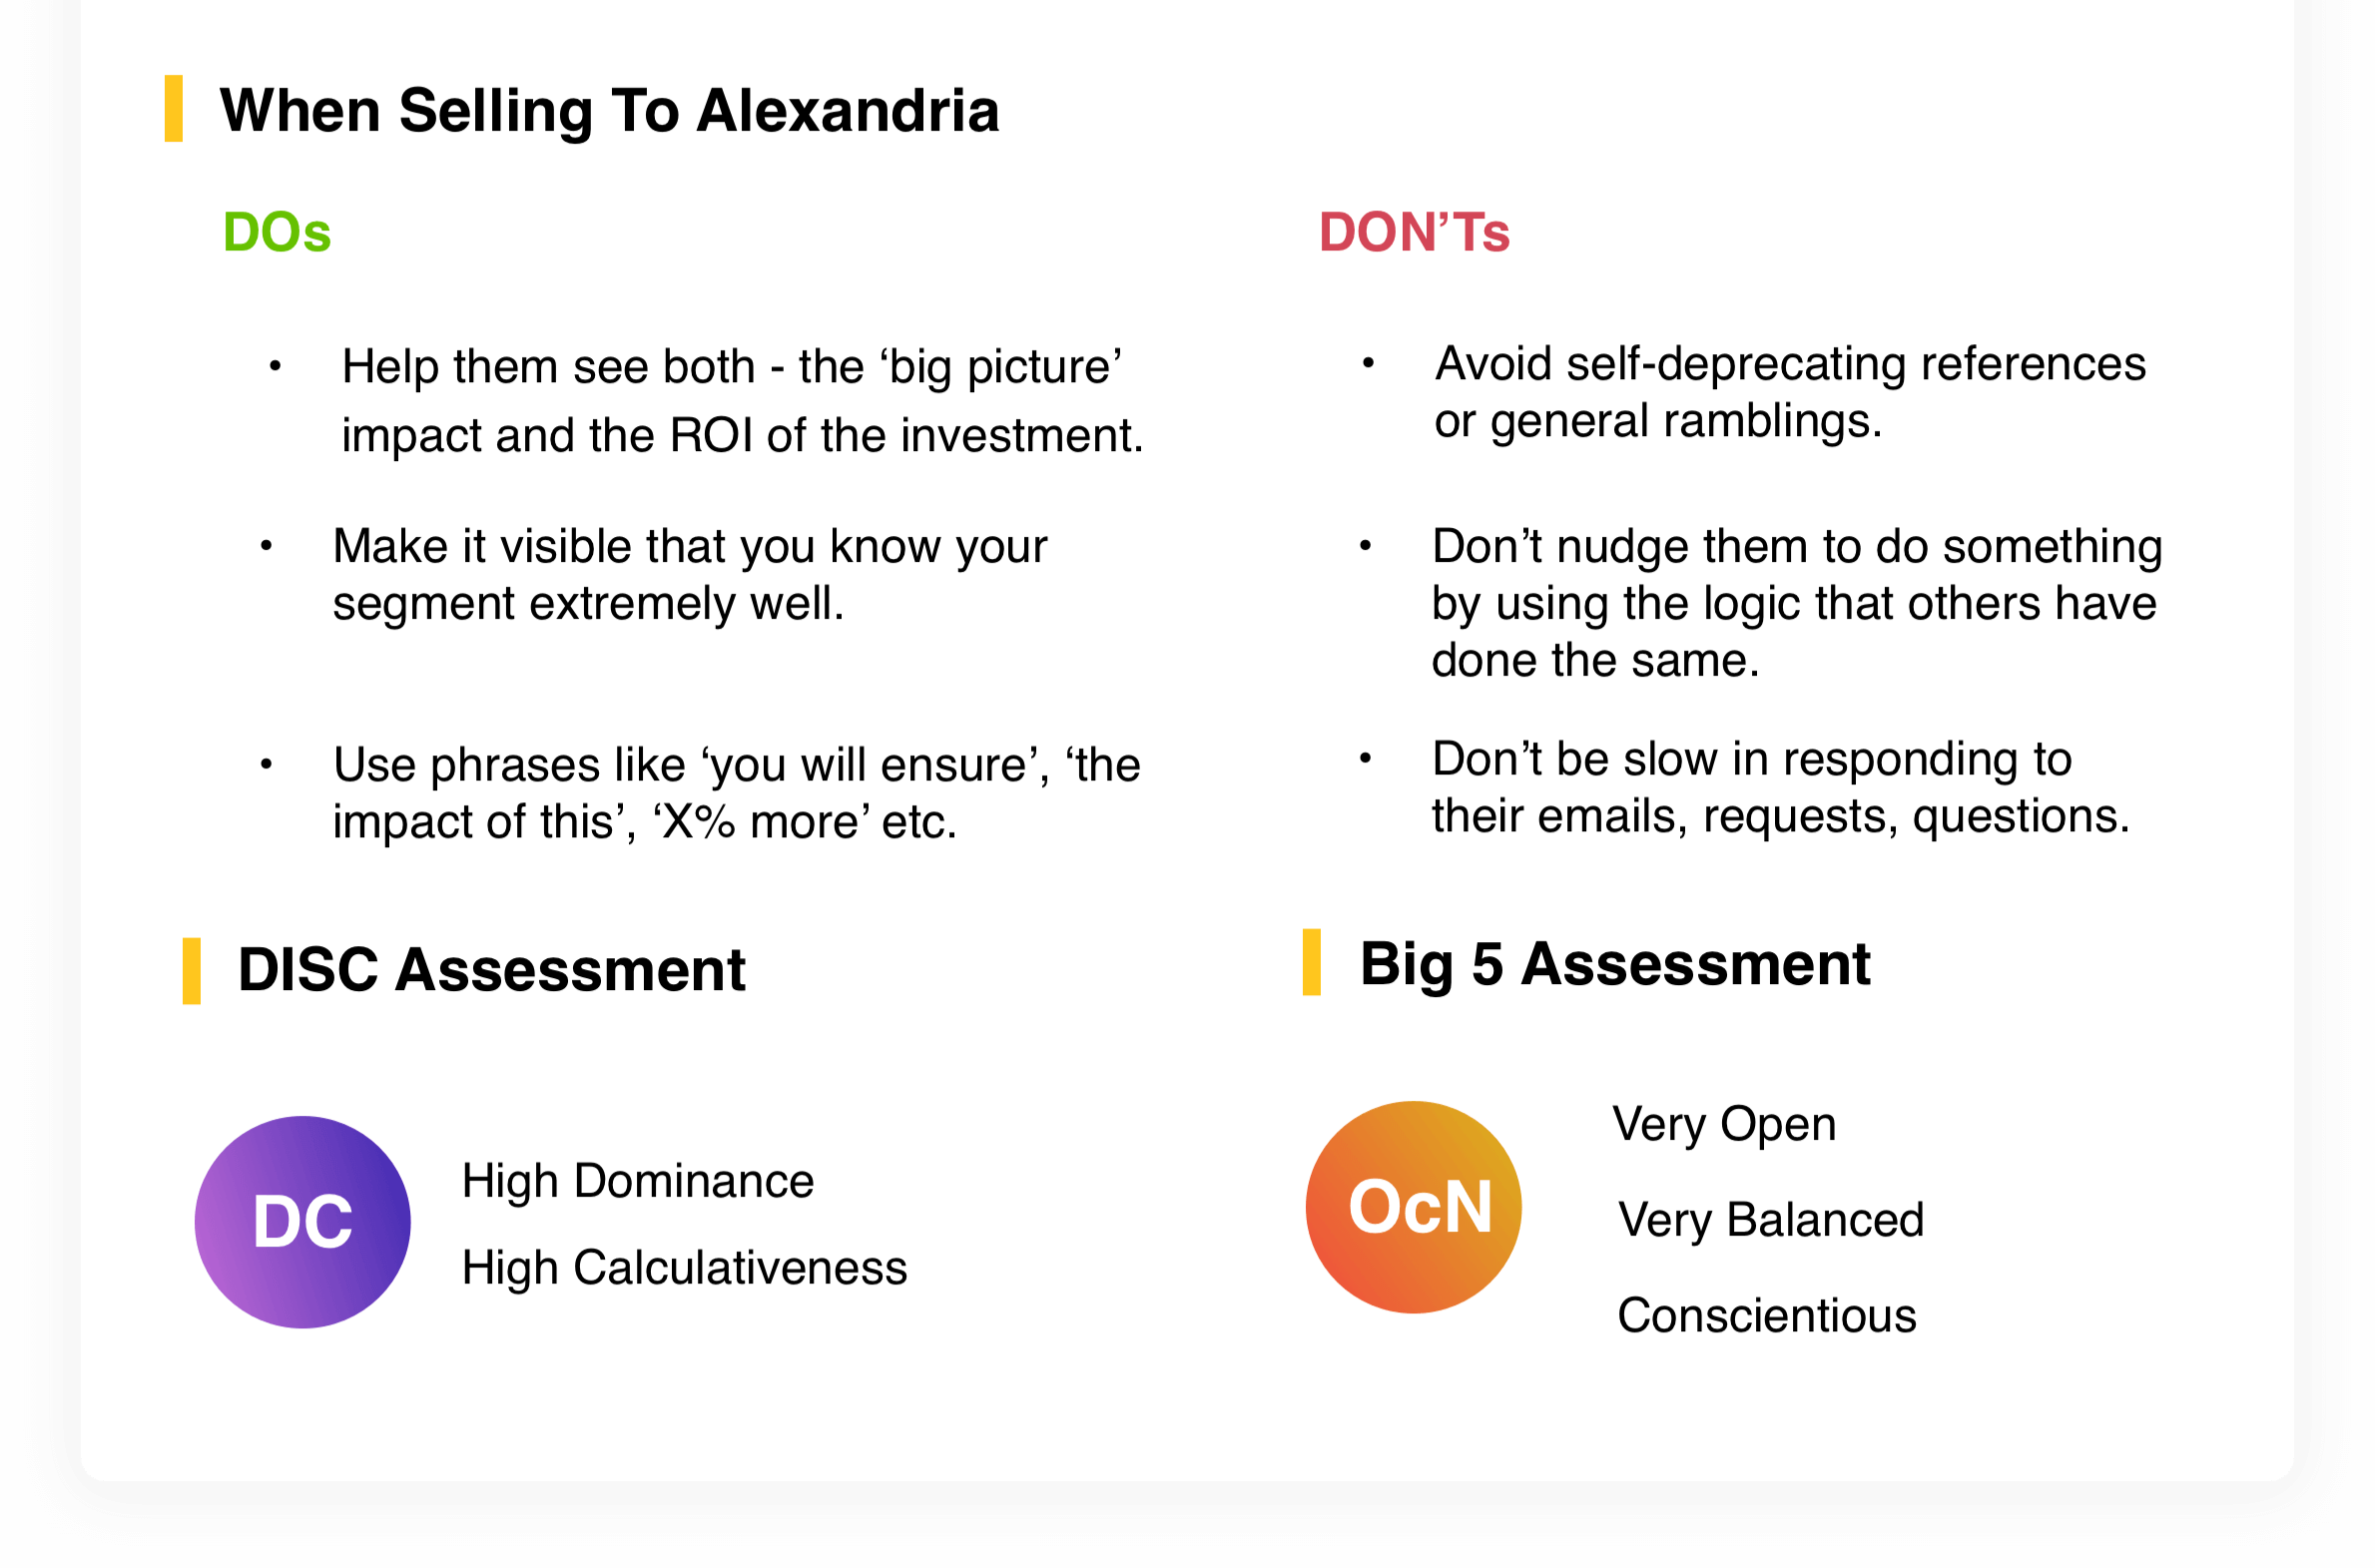 When Selling To Alexandria